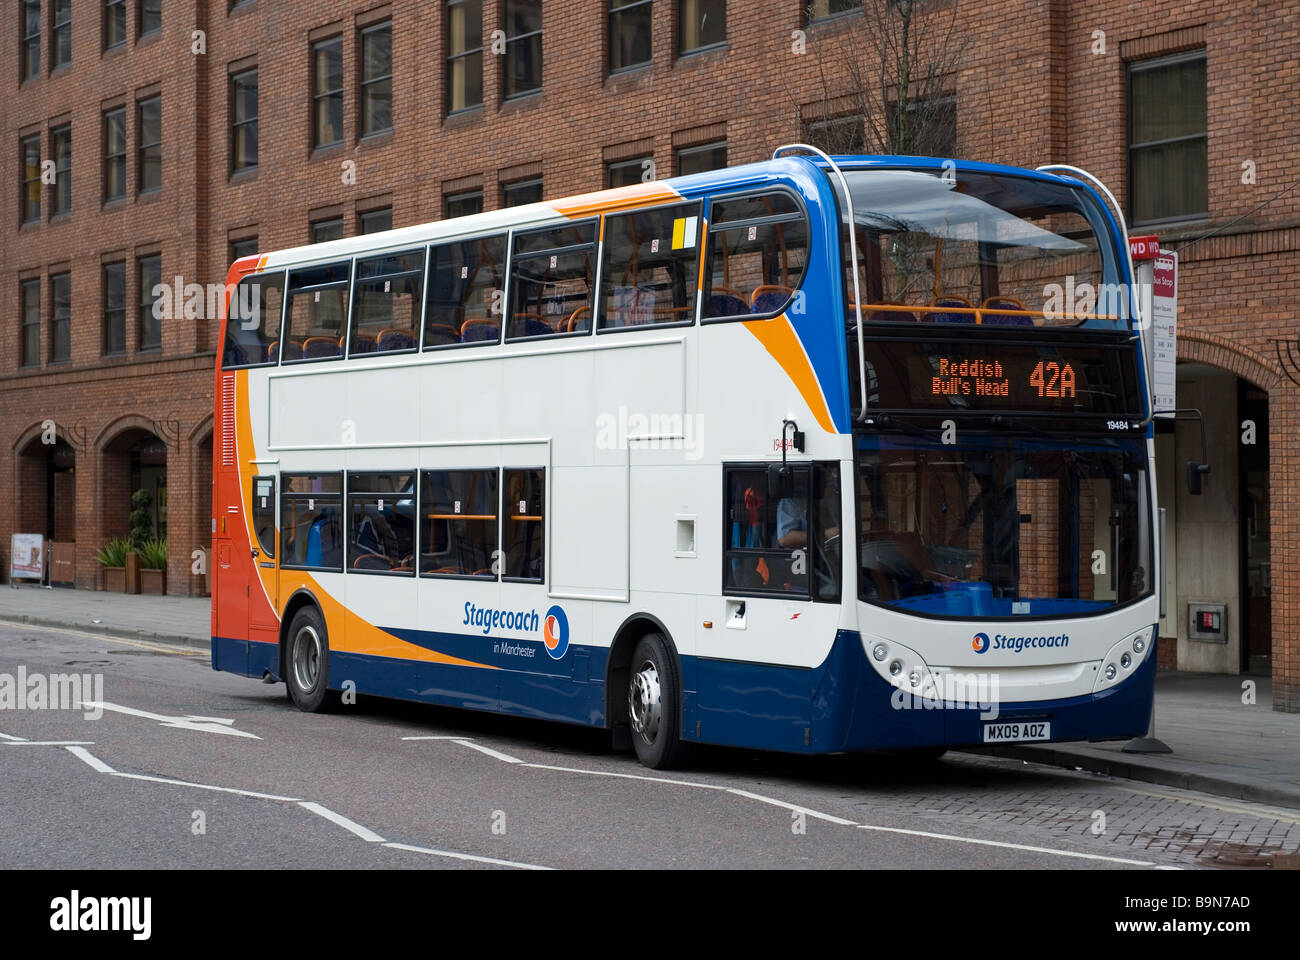 Stagecoach double decker bus by bus stop in Manchester city centre UK - Stock Image